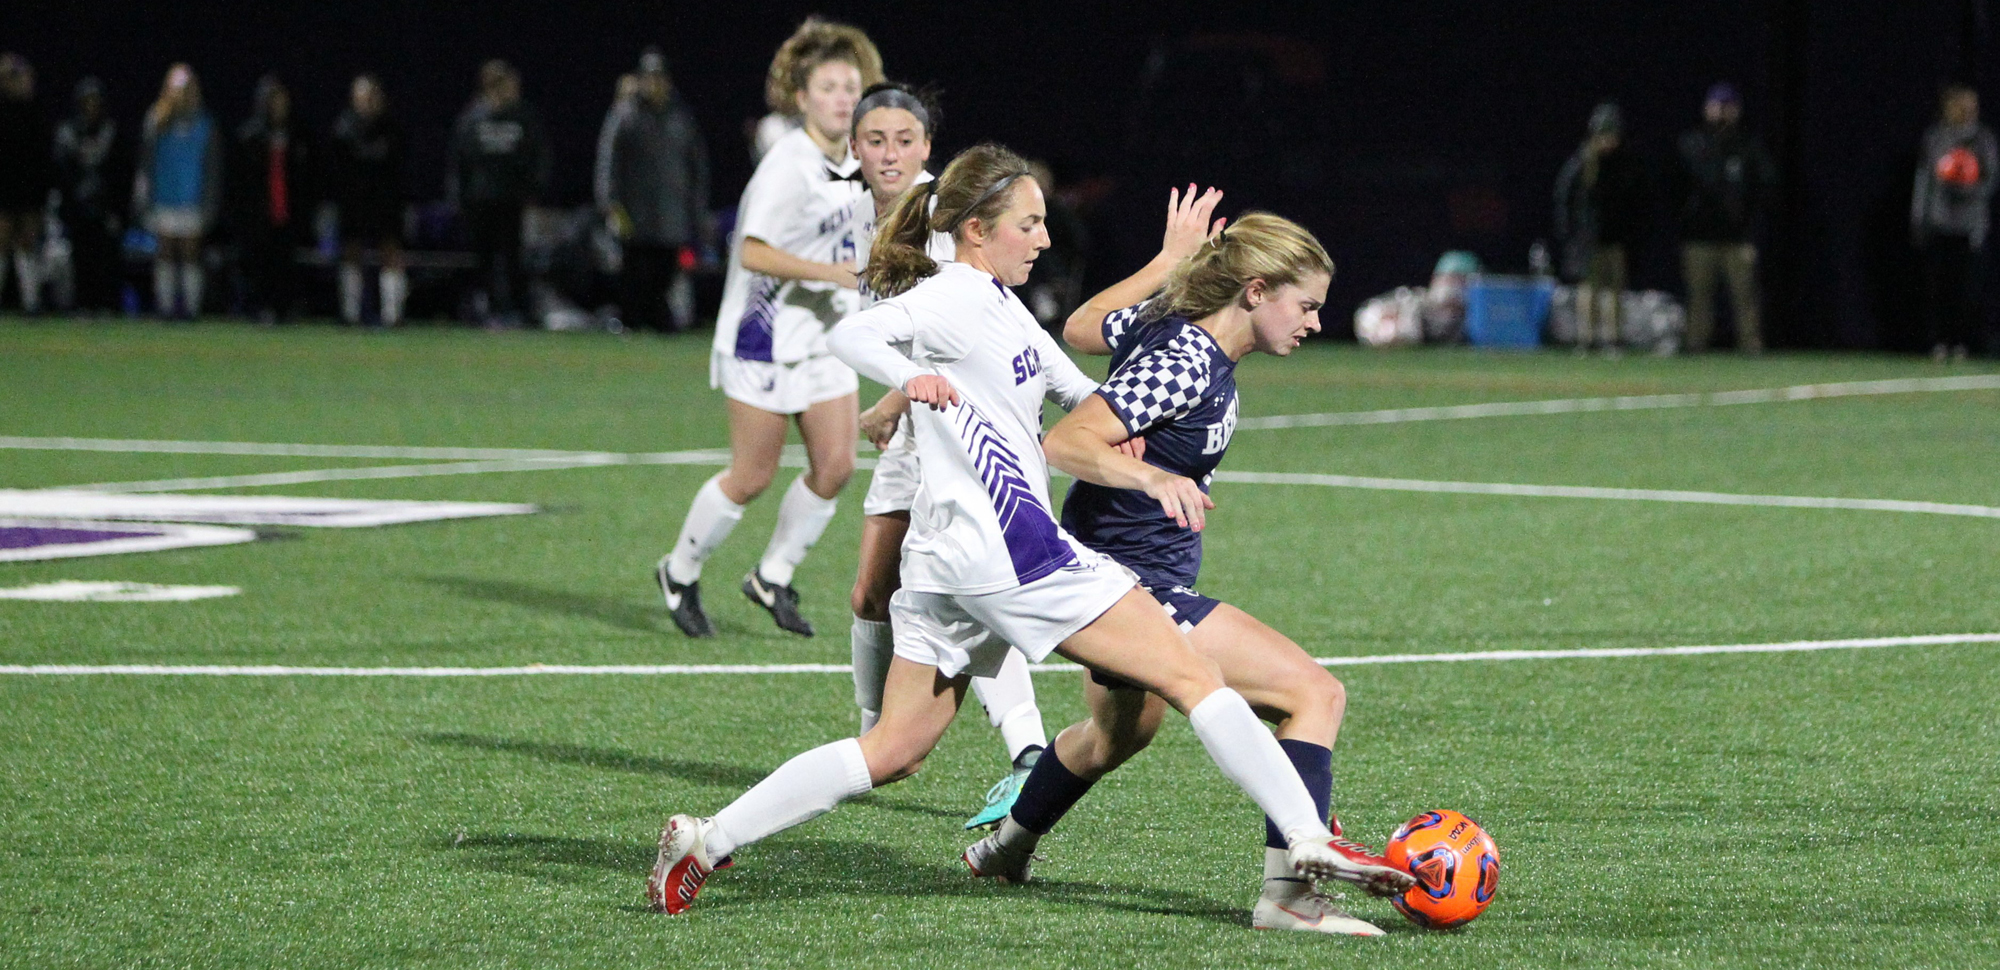 Freshman Steph Lowrey and the Royals couldn't solve PSU-Berks' defense on Tuesday night.